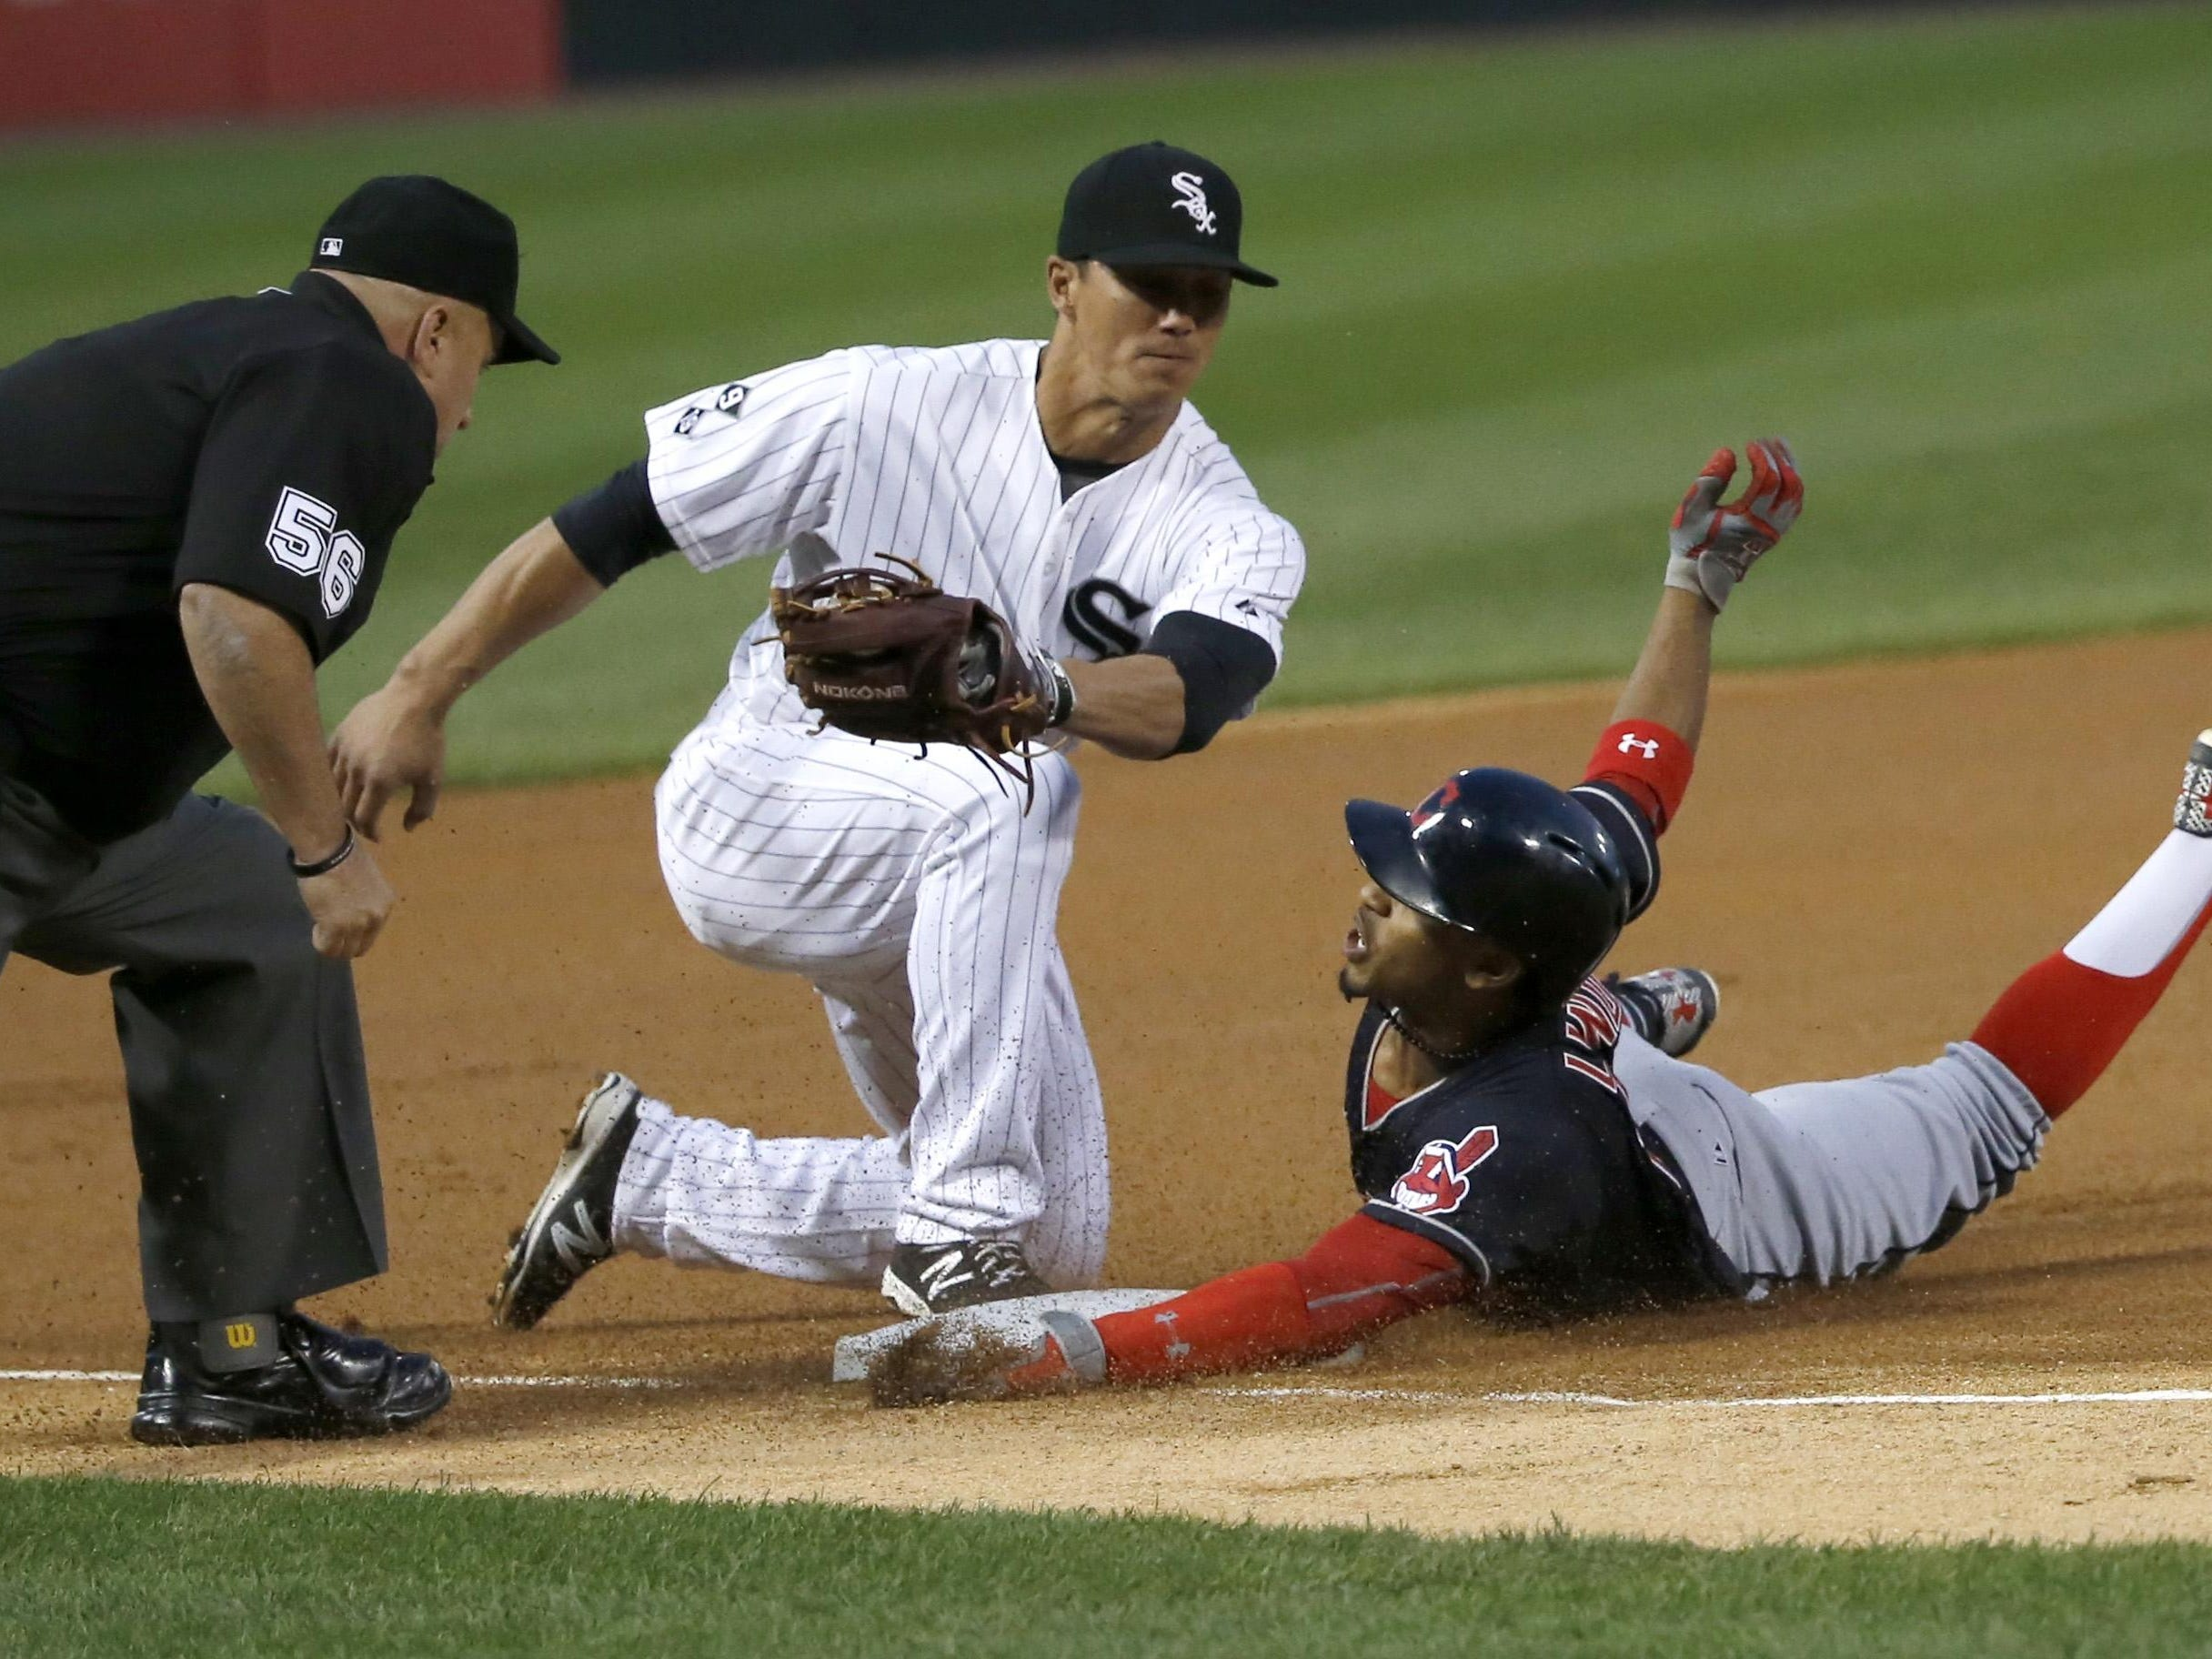 Cleveland Indians' Francisco Lindor slides safely into third for a triple, beating a throw from Chicago White Sox left fielder Melky Cabrera to third baseman Tyler Saladino, as umpire Eric Cooper watches, during the first inning of a baseball game Wednesday, Sept. 9, 2015, in Chicago. (AP Photo/Charles Rex Arbogast)